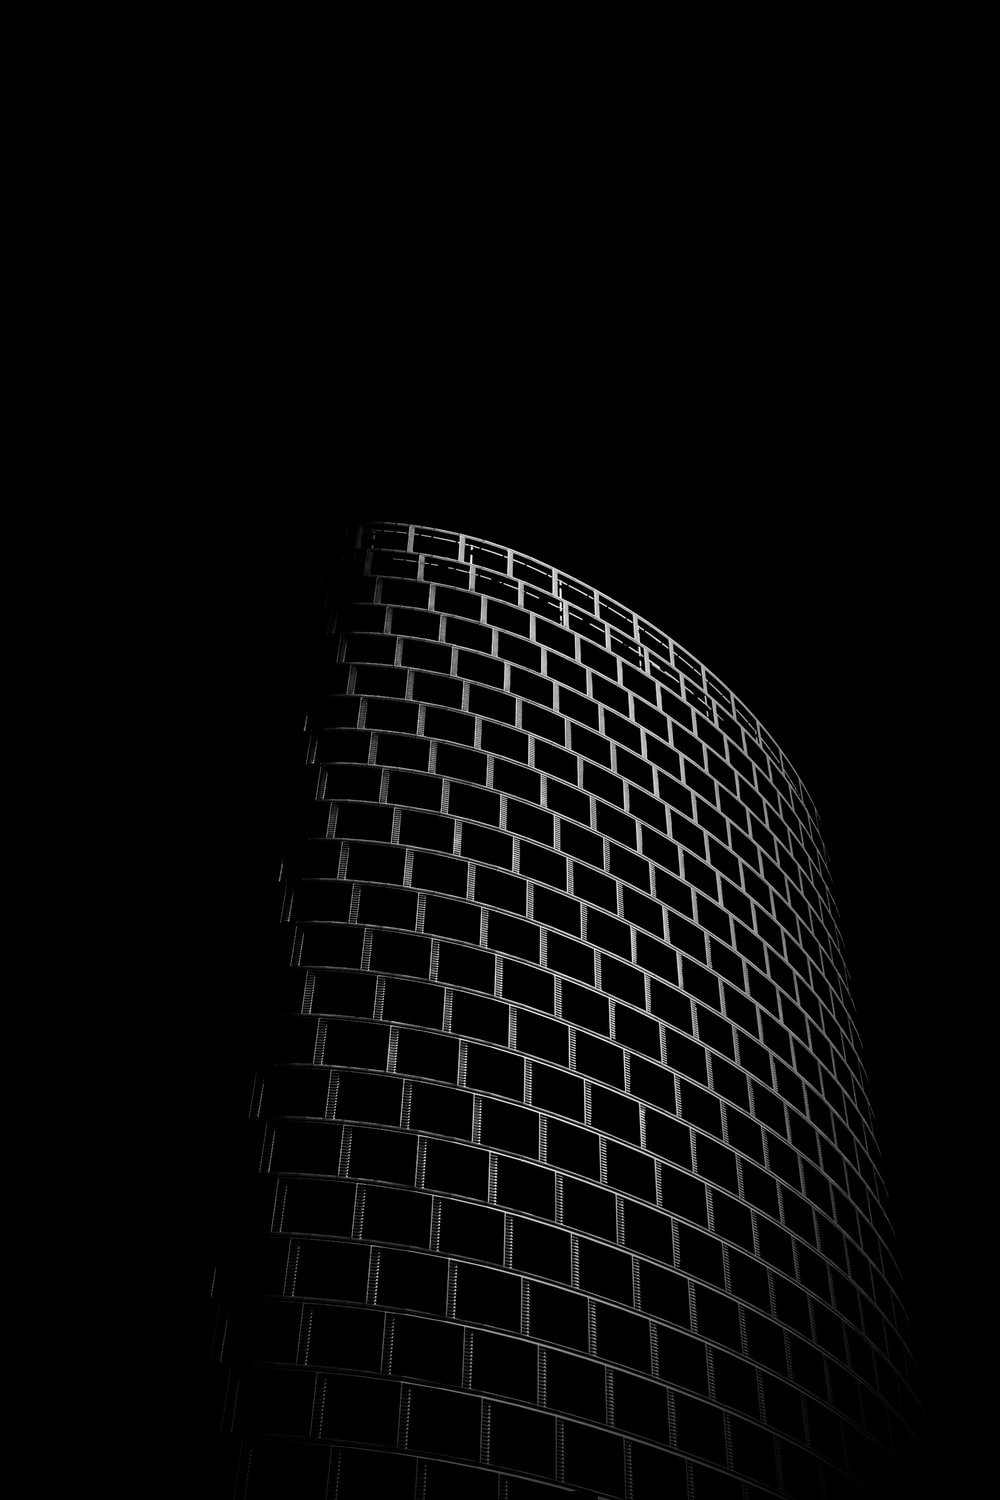 Amoled Wallpapers Free 100 Best Wallpaper Black And White Dark Photos On Unsplash